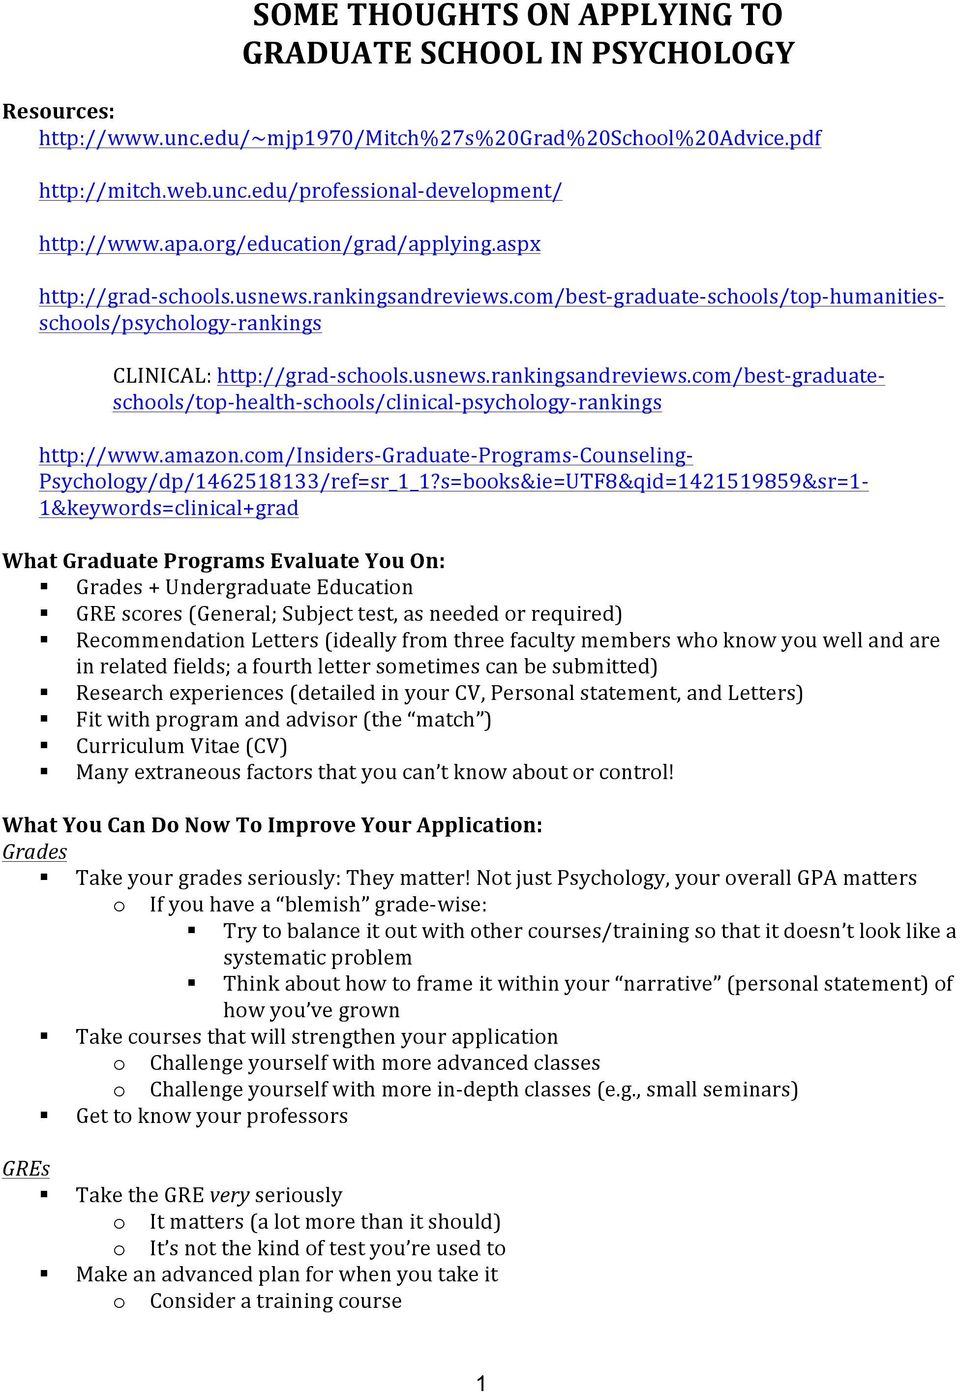 SOME THOUGHTS ON APPLYING TO GRADUATE SCHOOL IN PSYCHOLOGY - PDF